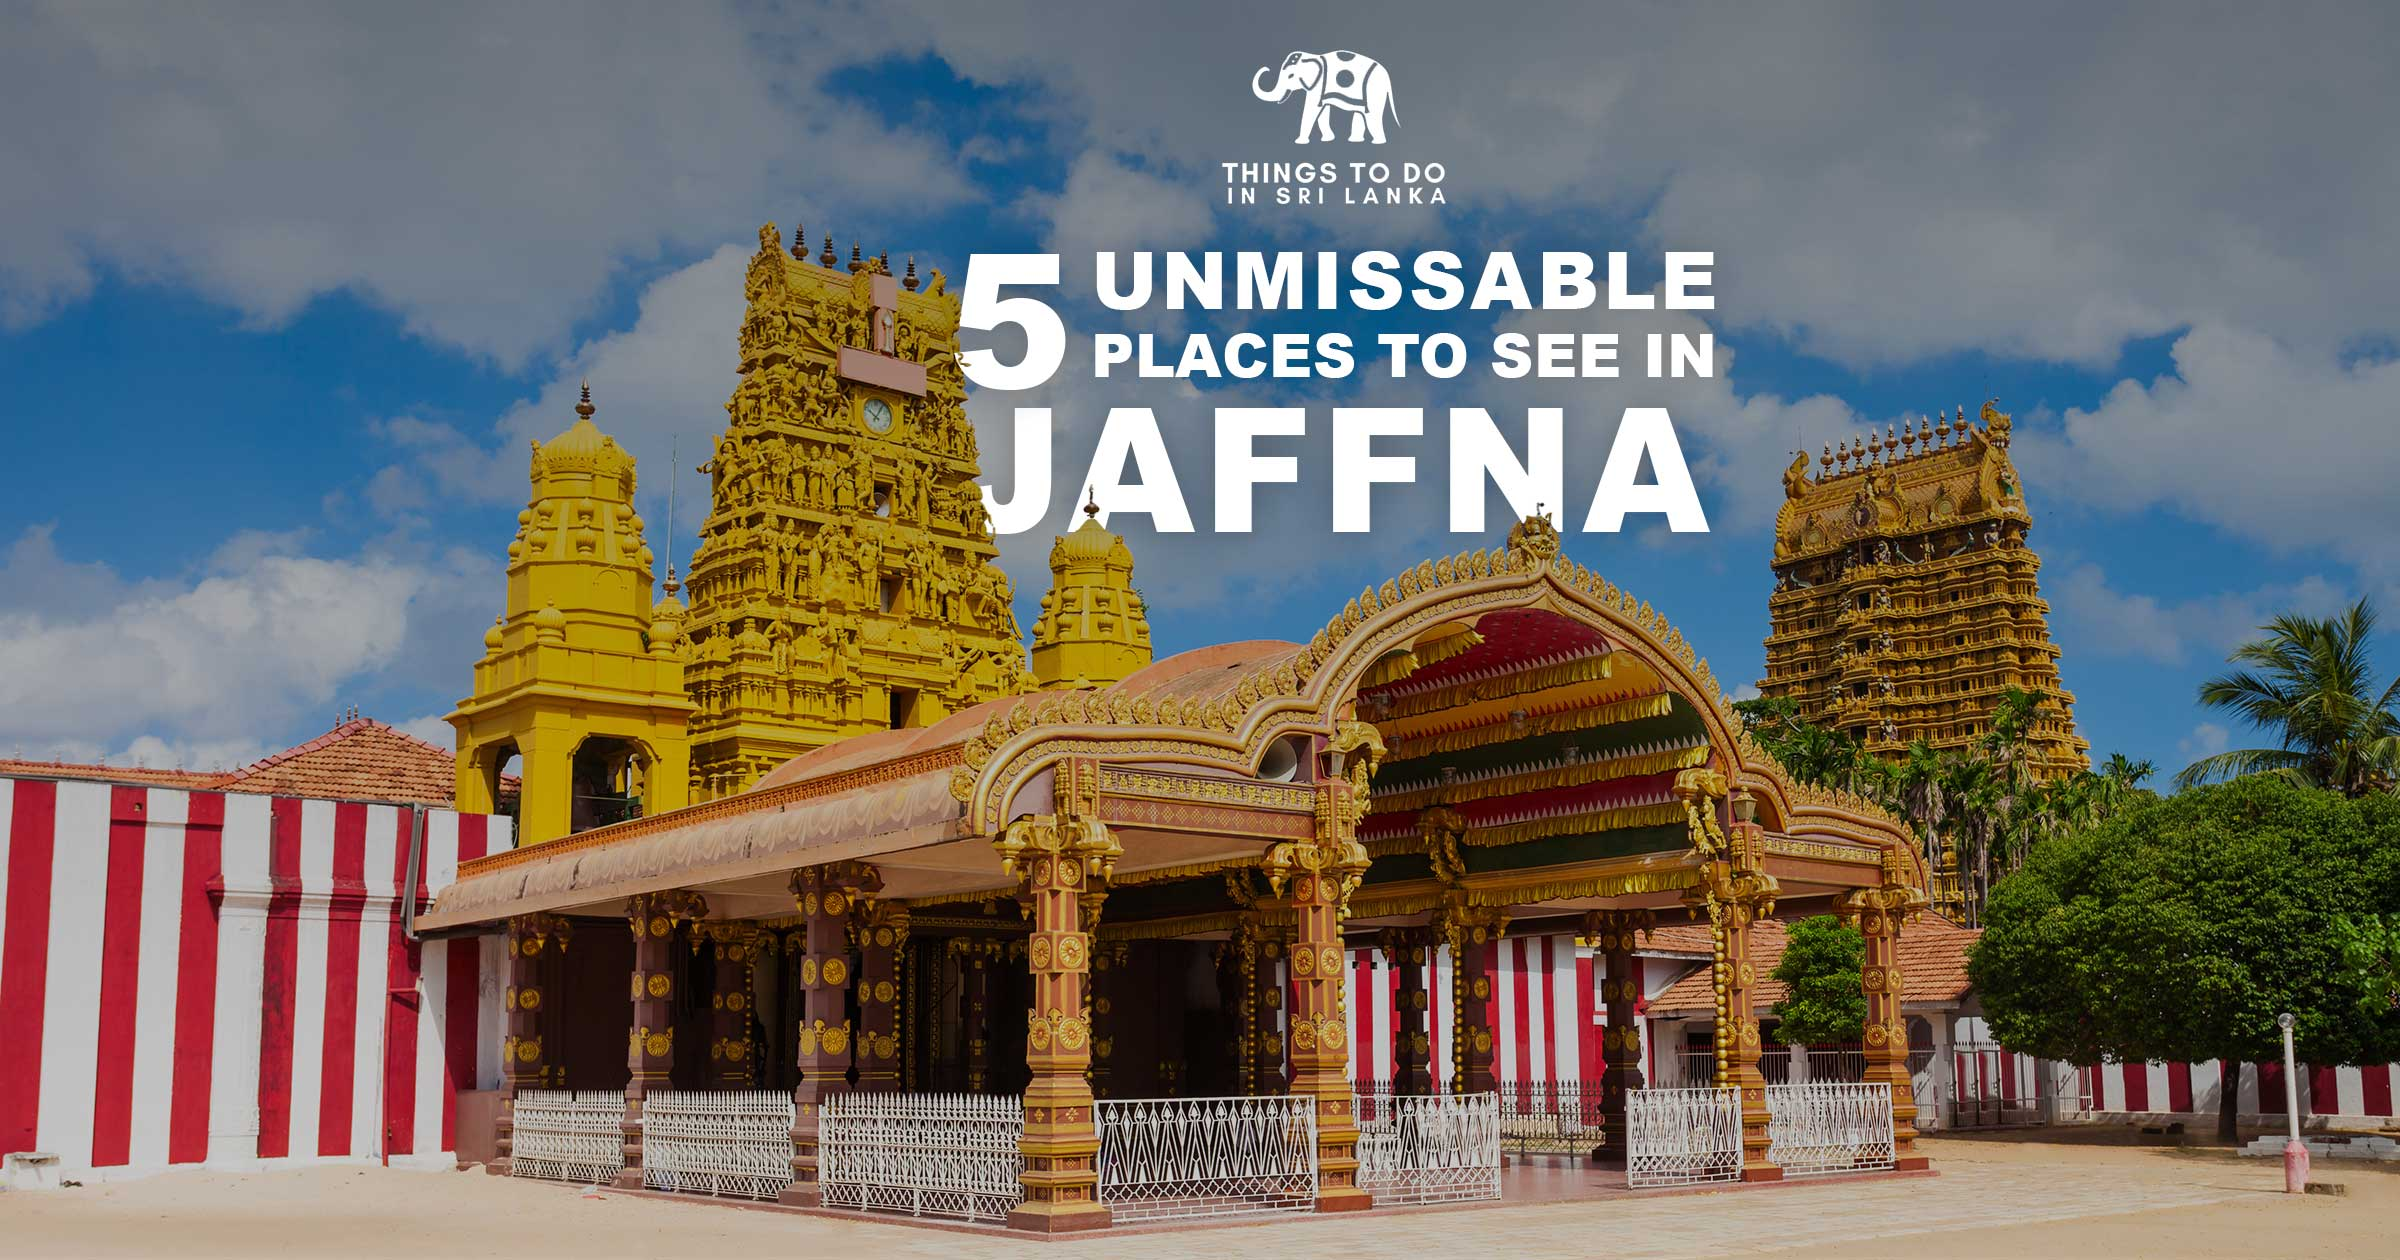 Top 5 things to do in Jaffna